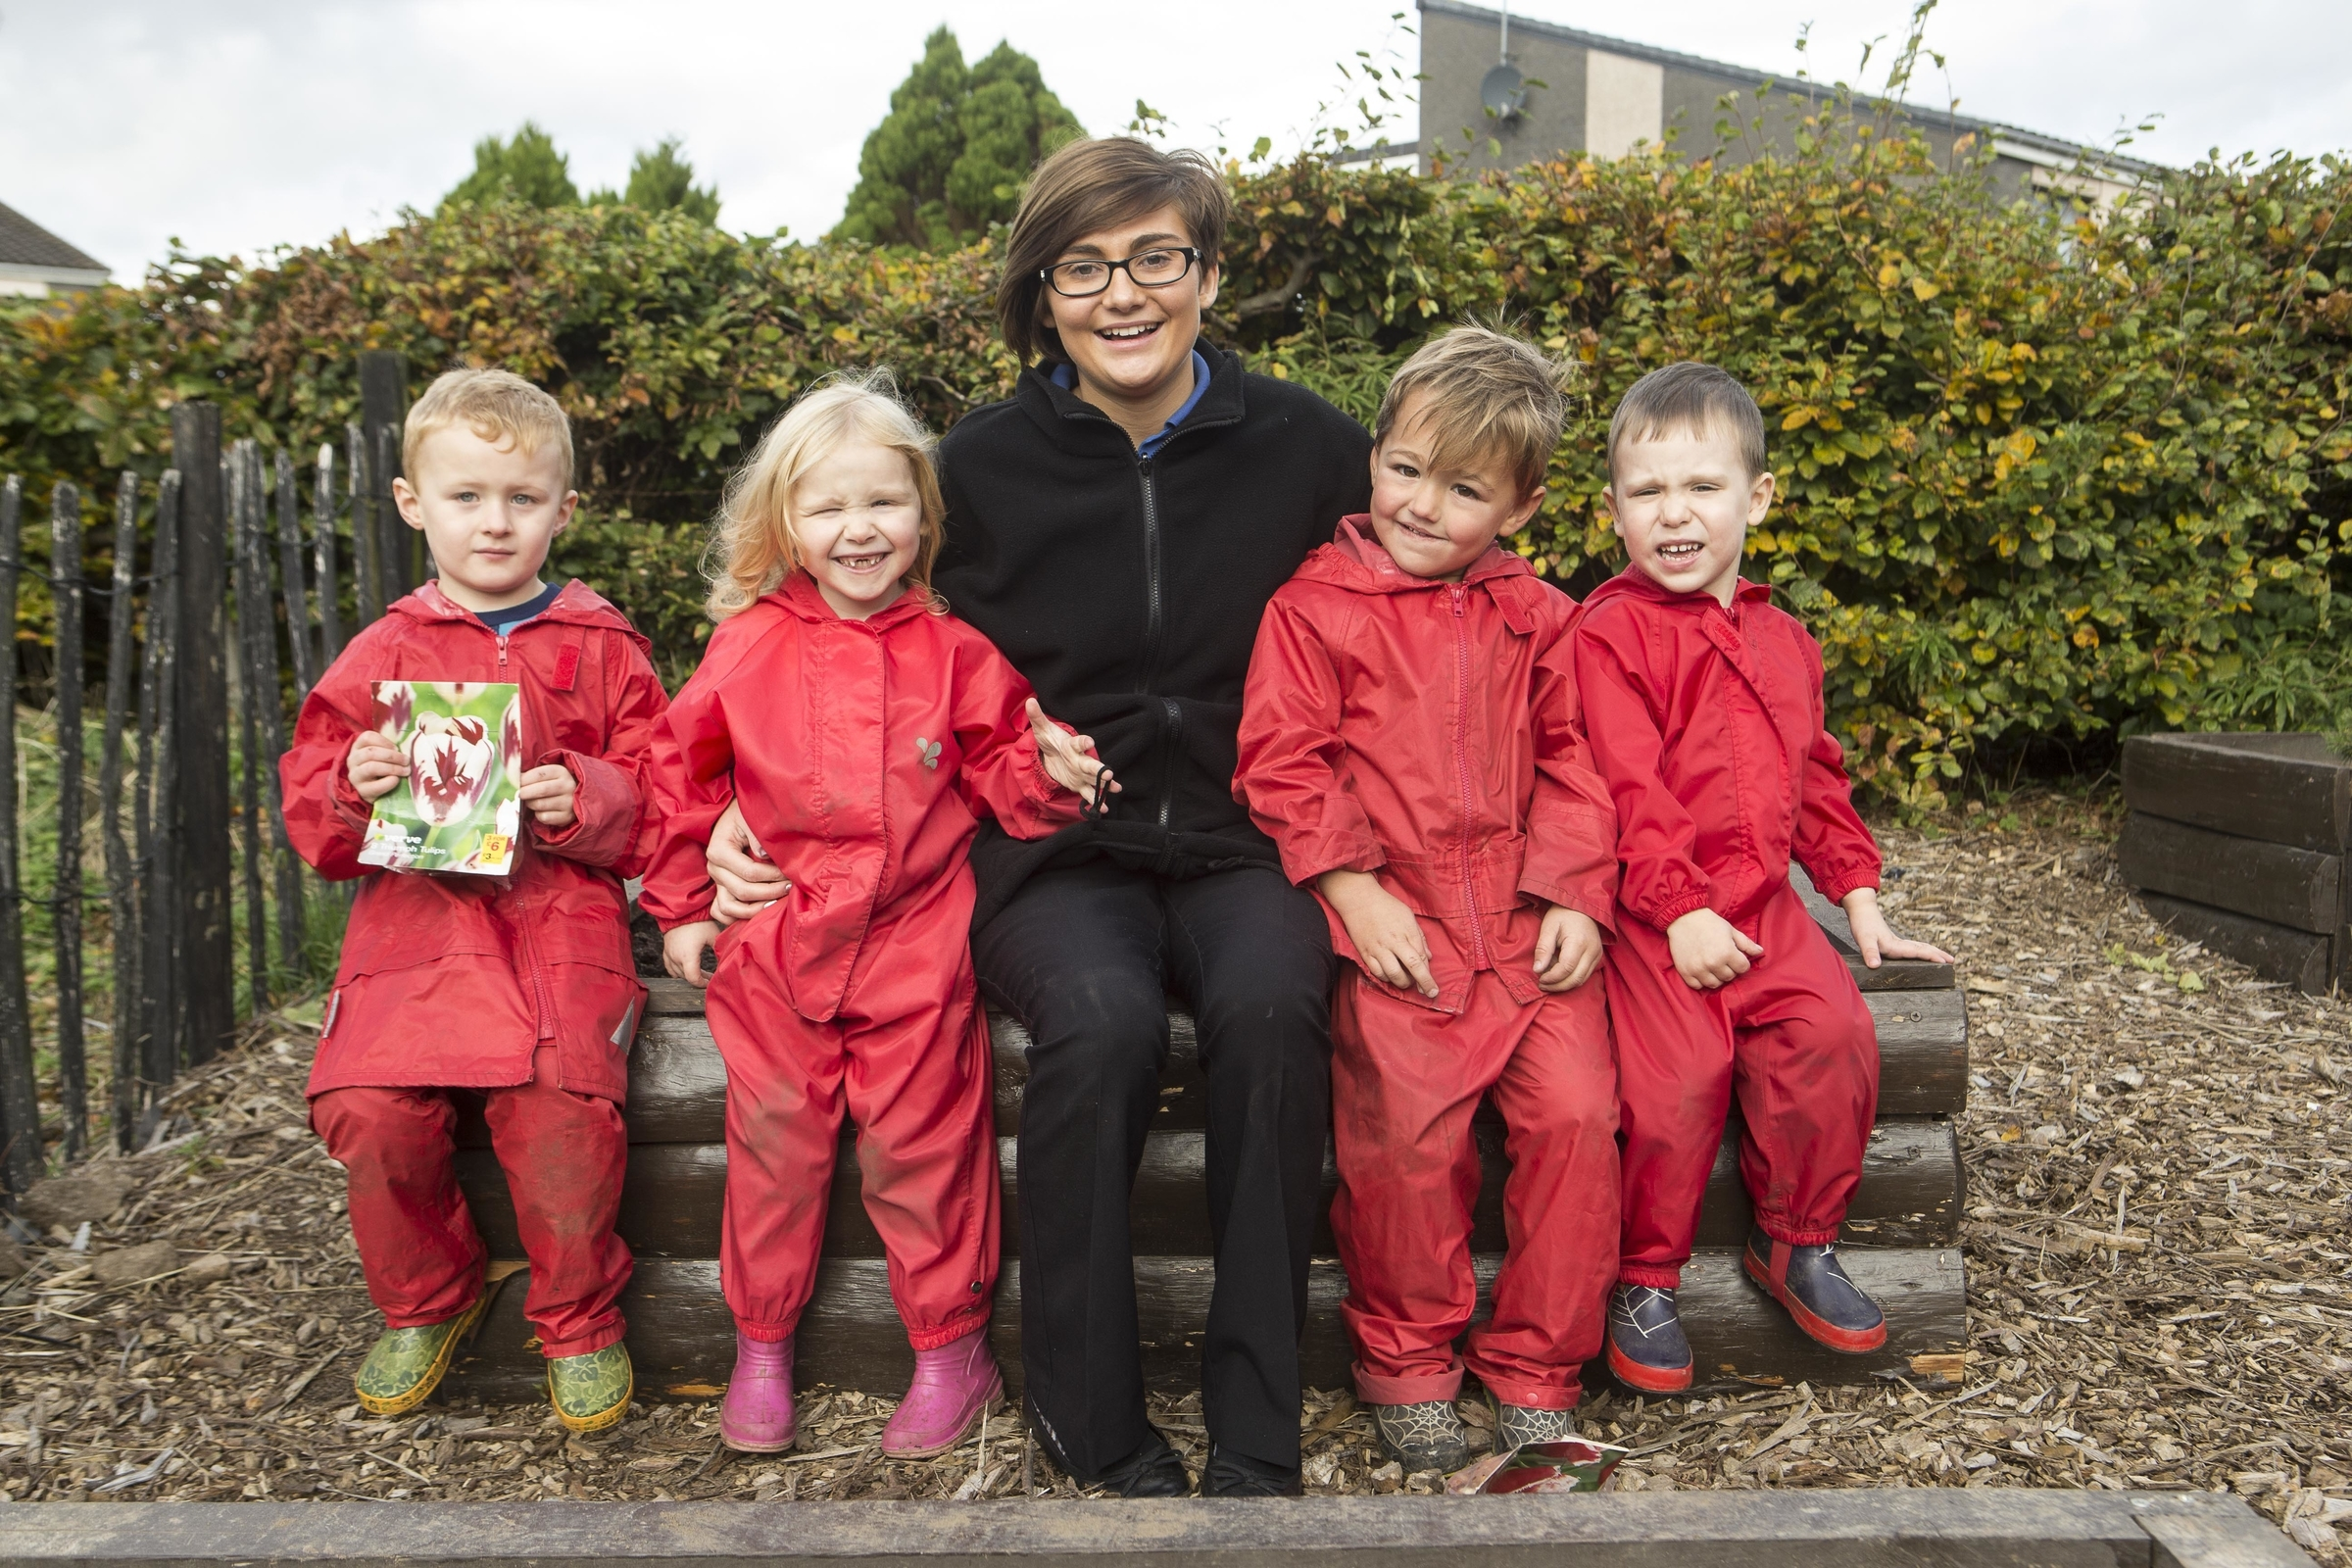 Youngsters Charlie More, Emily Taylor, Campbell Stephen and Nikita Volovik with junior manager Stephanie Reidford at Clockwork Nursery